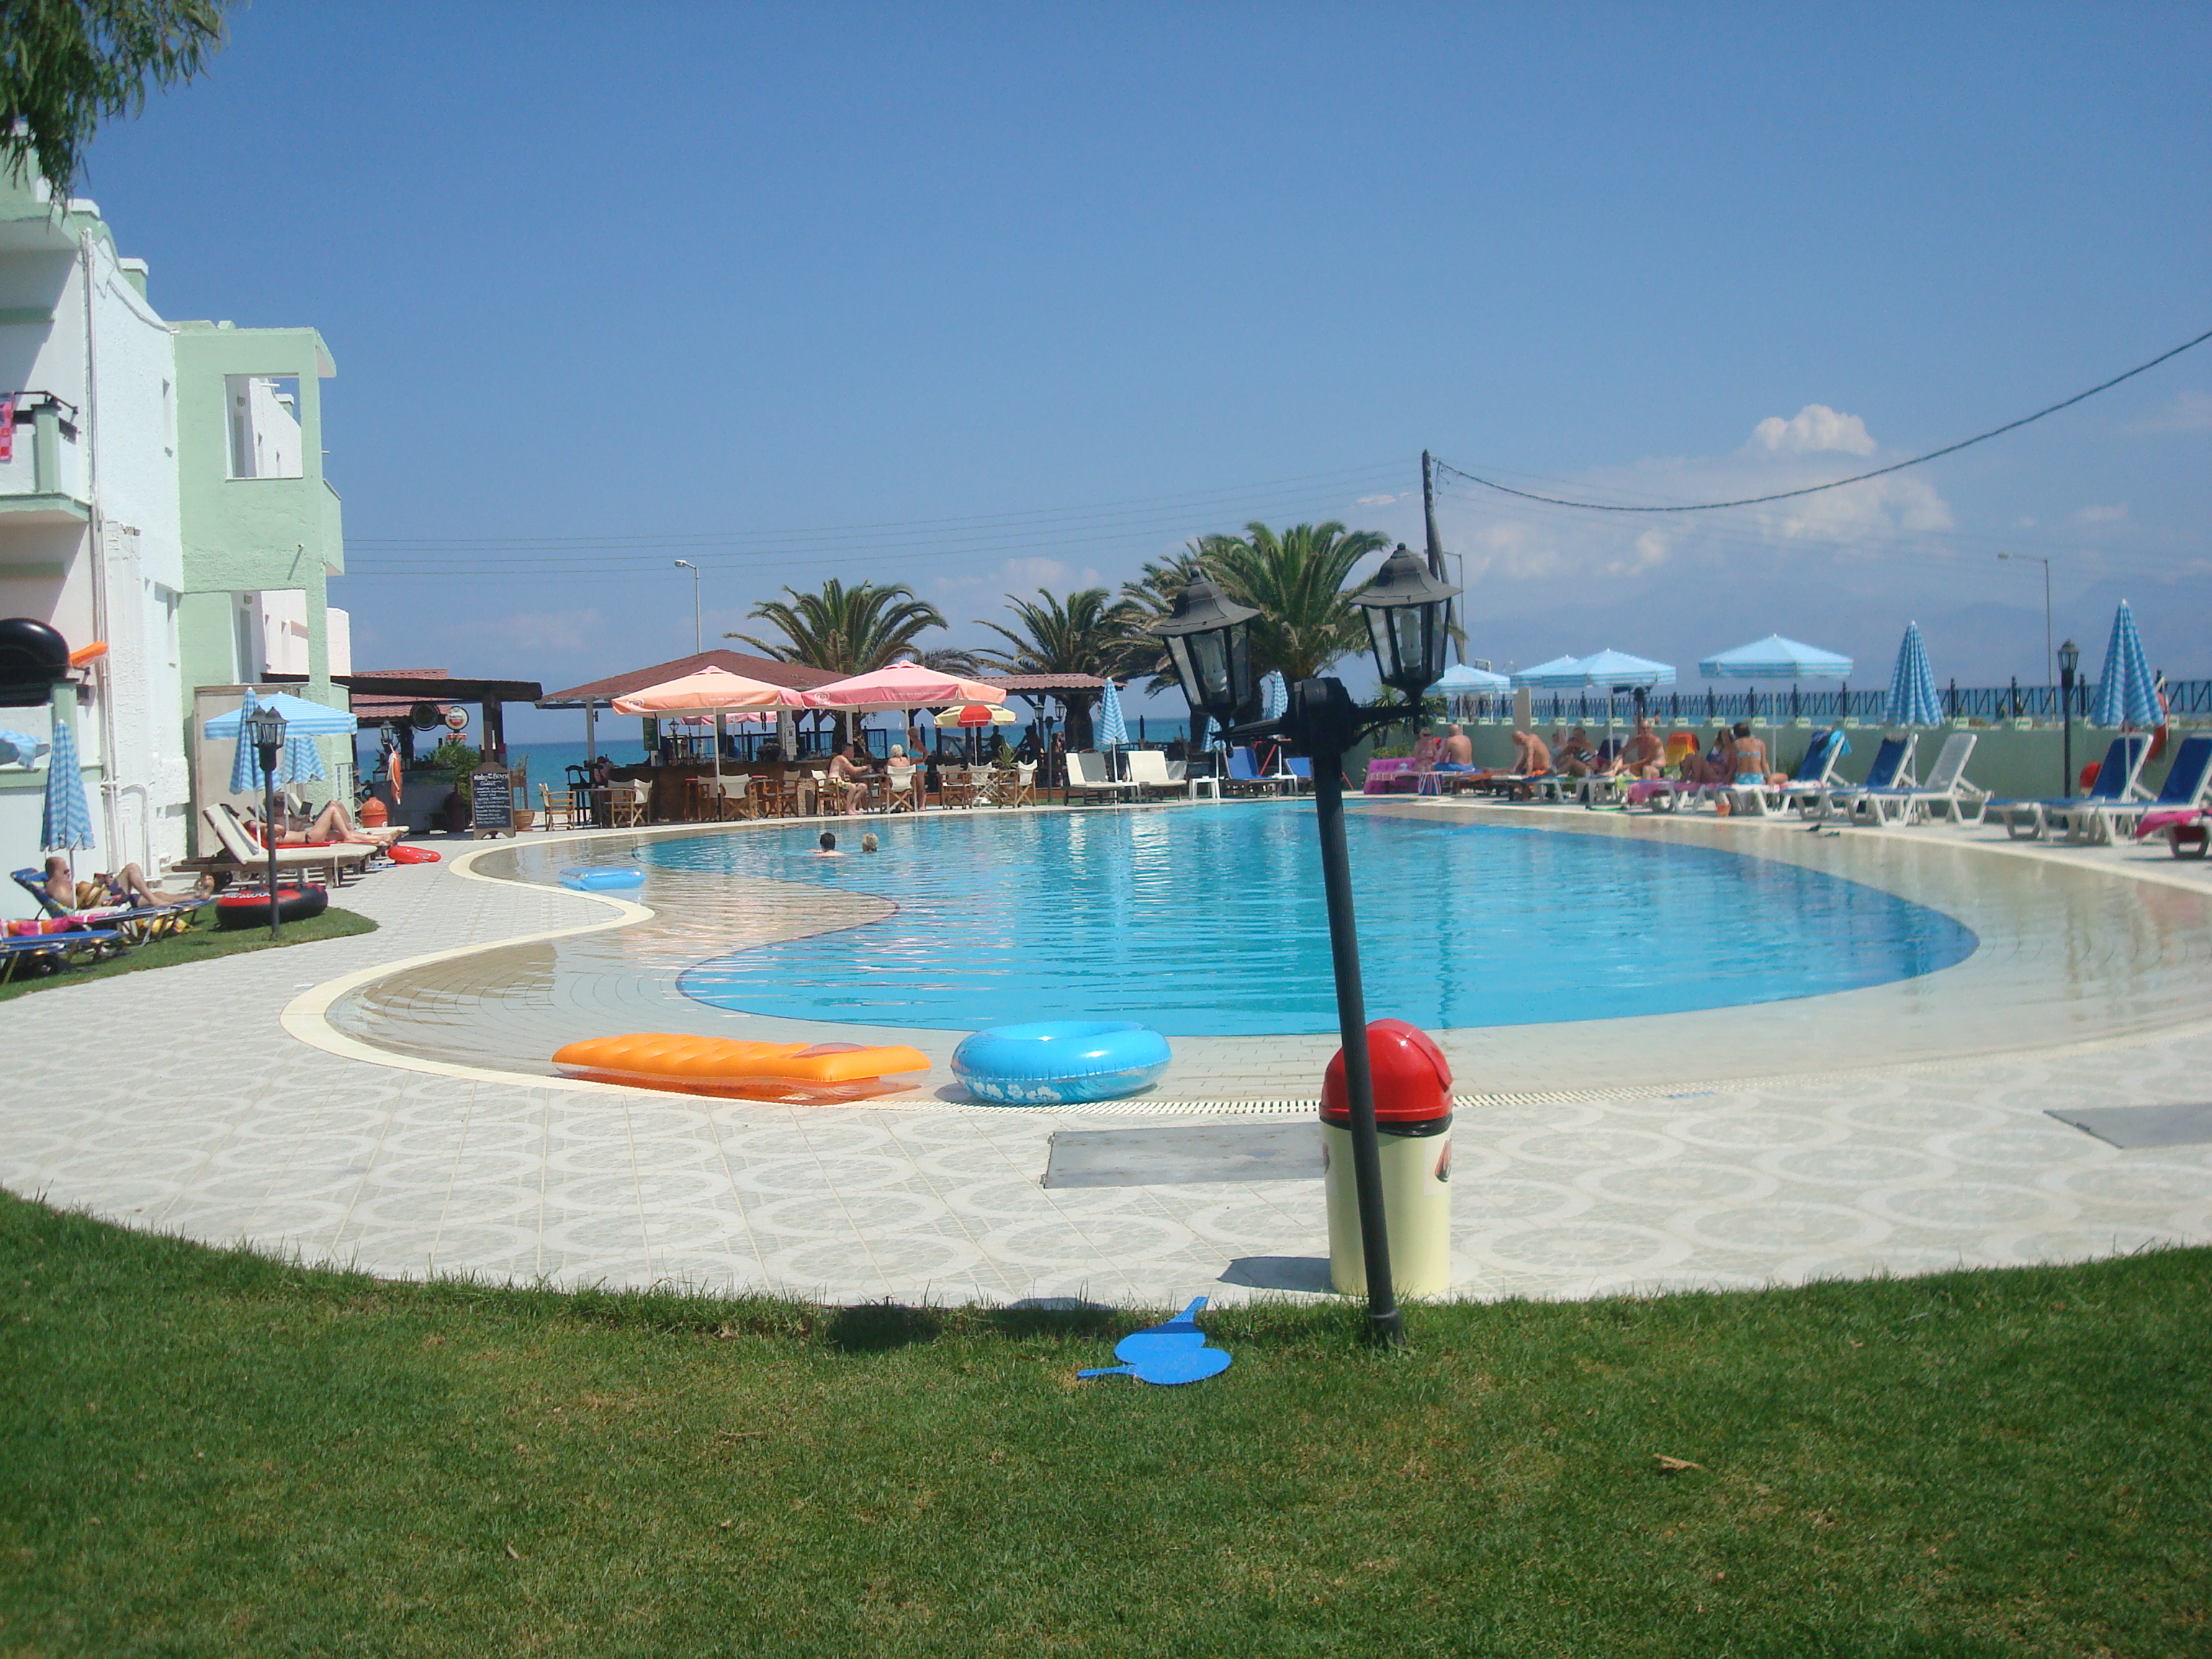 Roda swimming pool